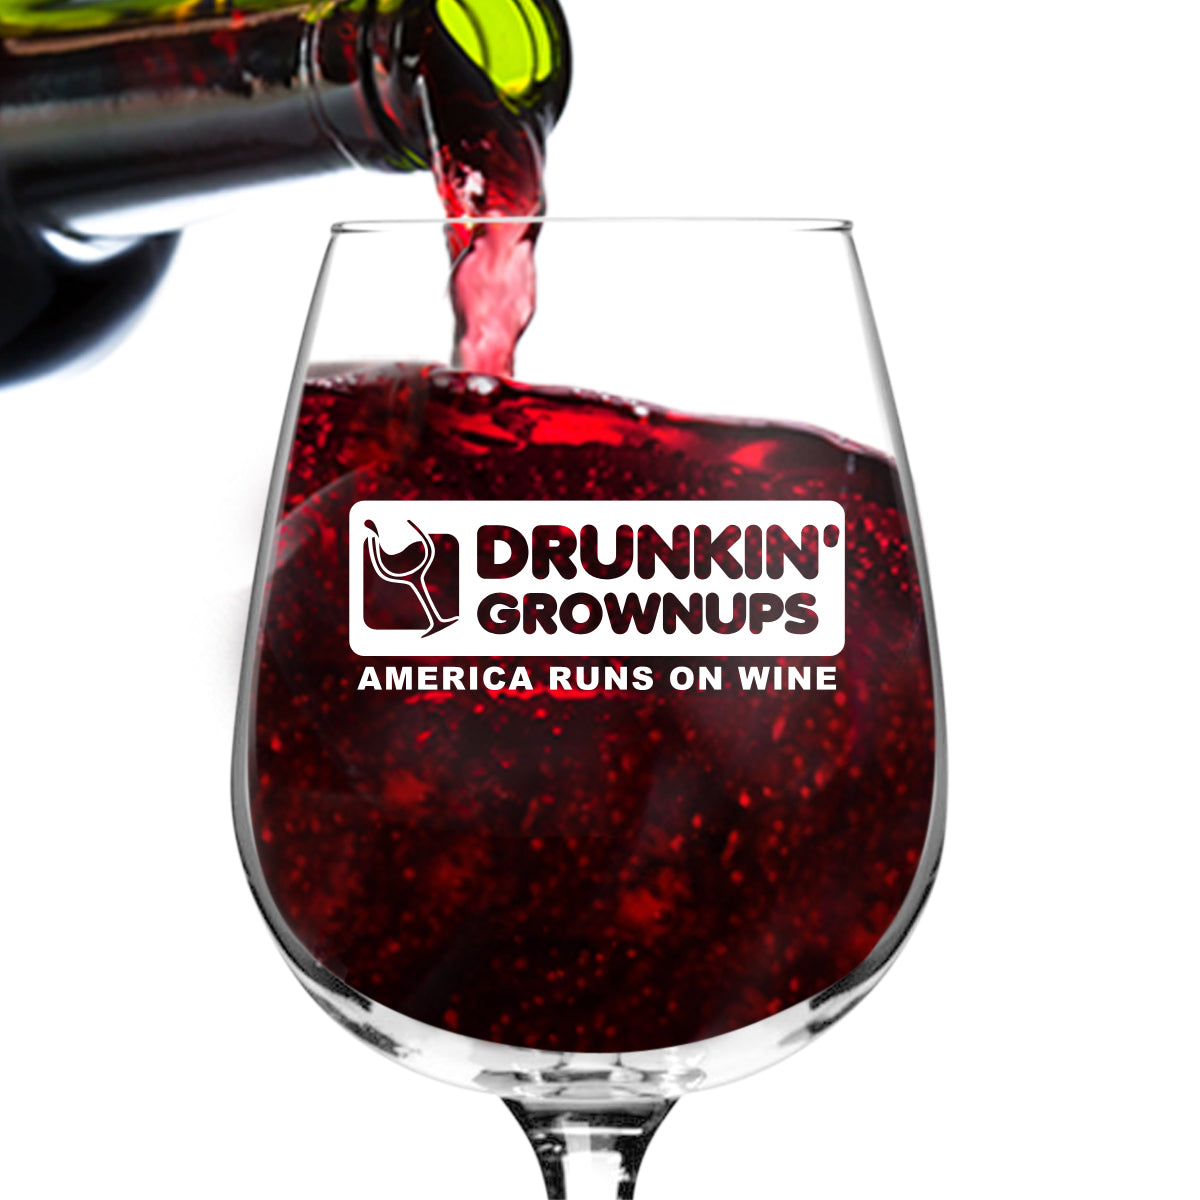 Drunkin' Grownups Funny Wine Glass Gifts for Women- Premium Birthday Gift for Her, Mom, Best Friend- Unique Present Idea